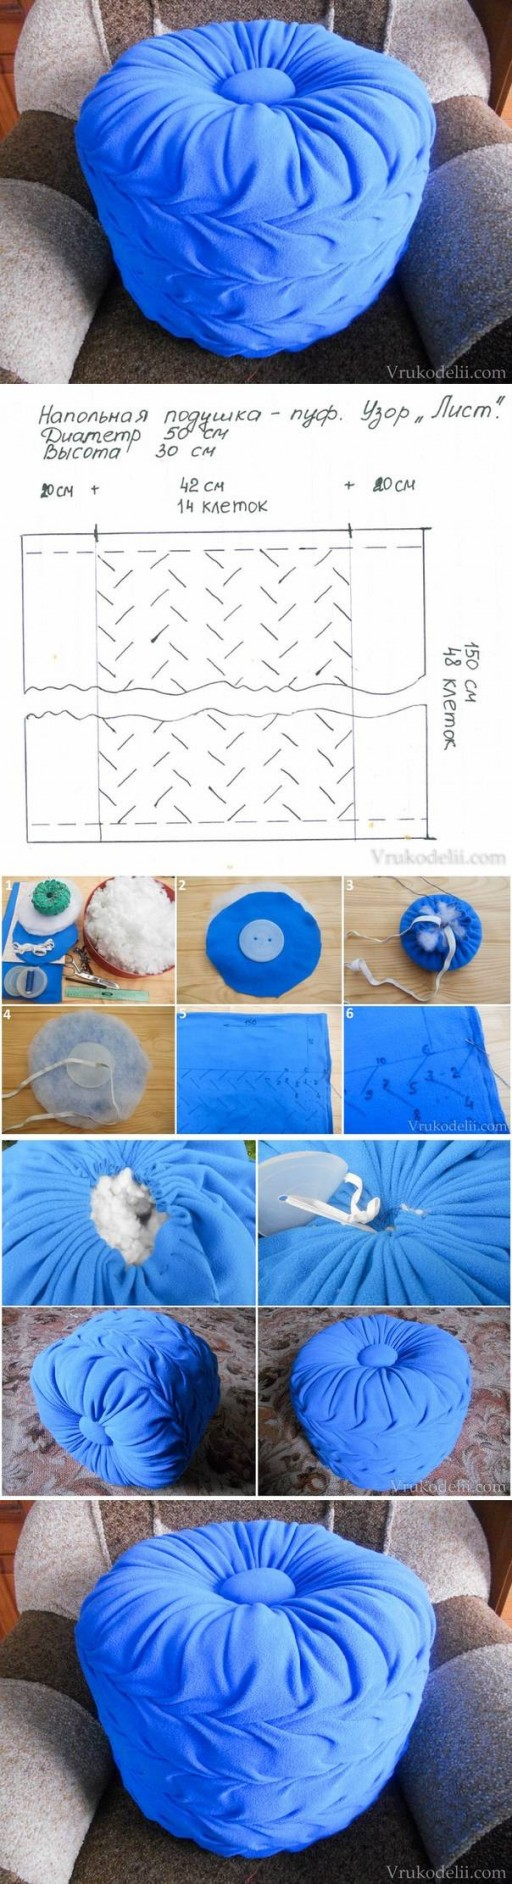 How to Make living room Floor Pillow Puff step by step DIY tutorial instructions